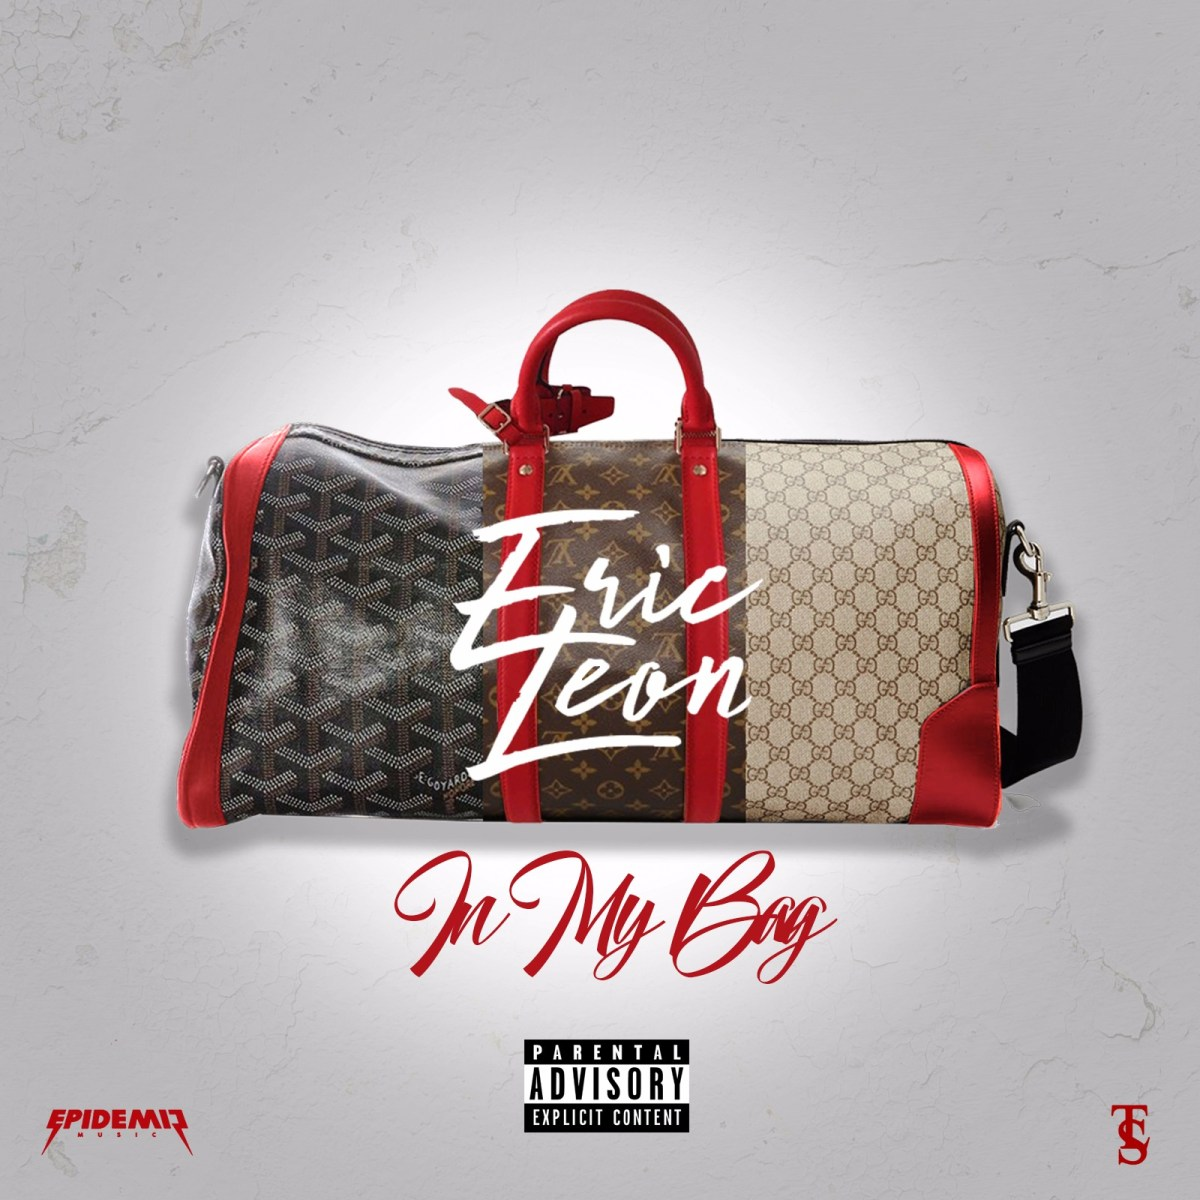 Eric Leon (@EricLeon772) - In My Bag